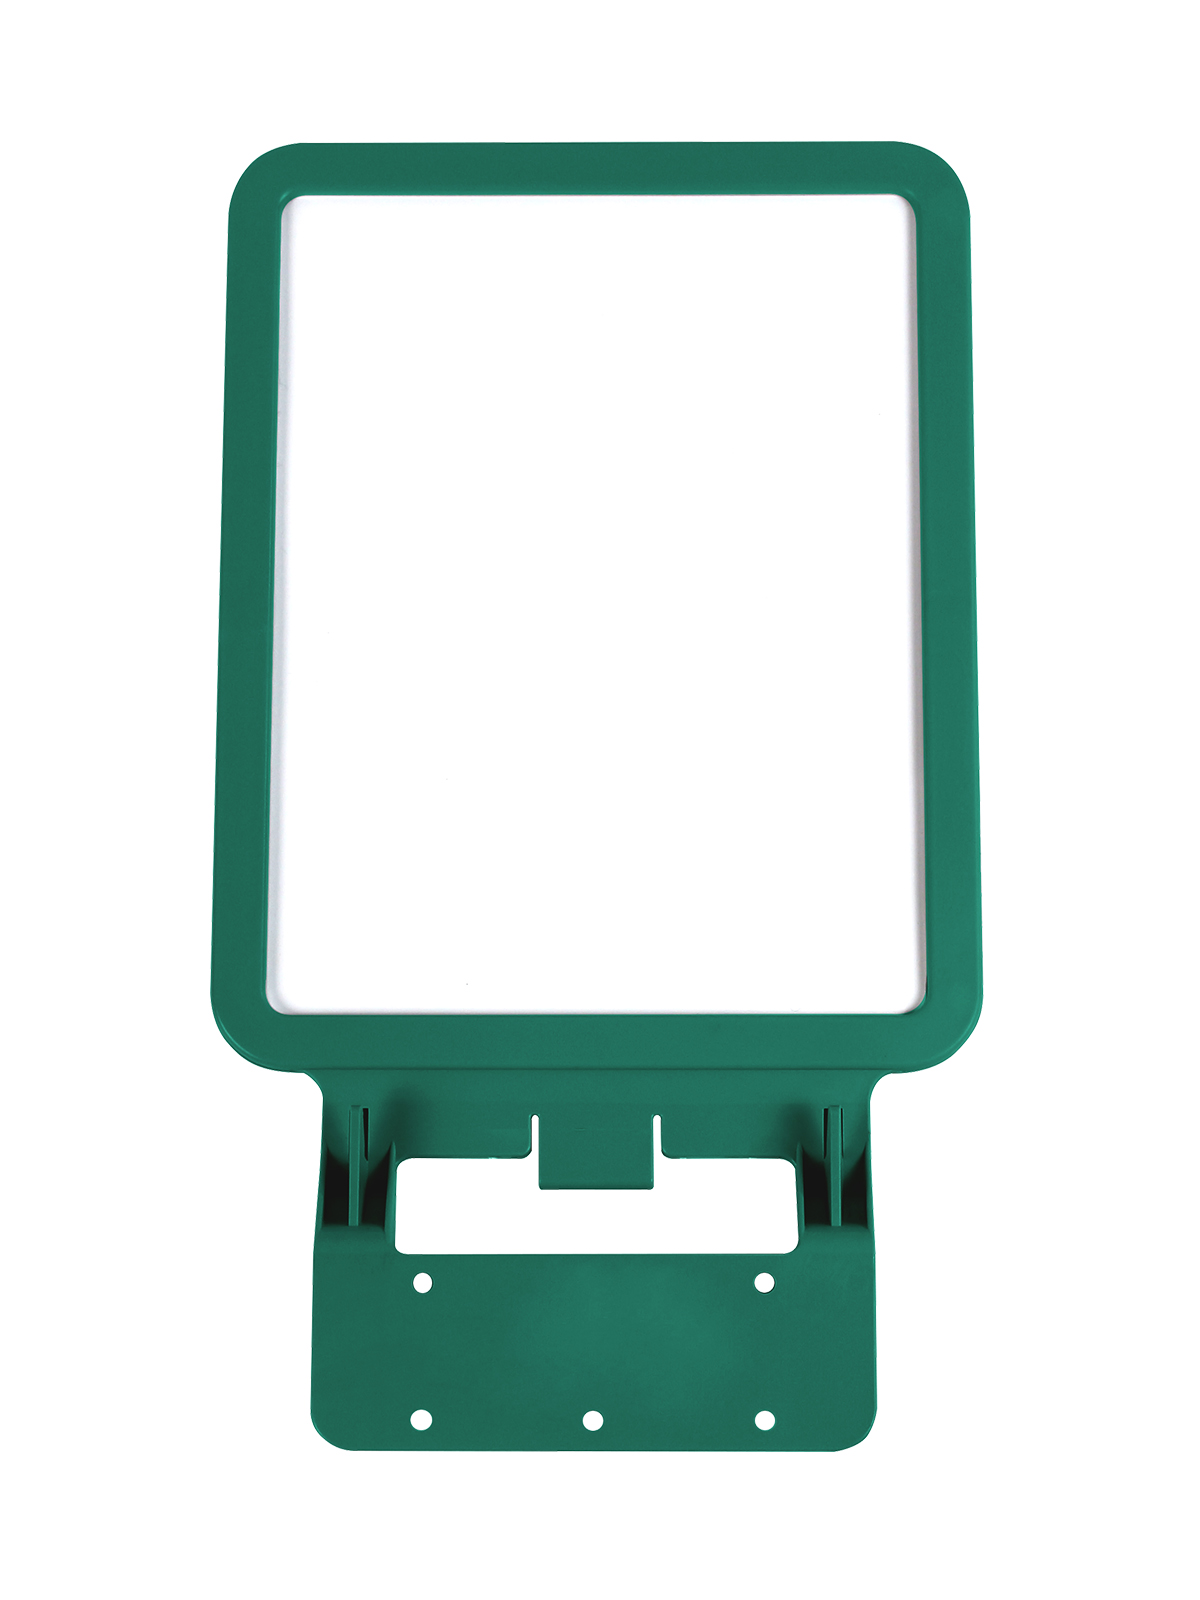 WASTE WATCHER - Sign Frame - Dark Green